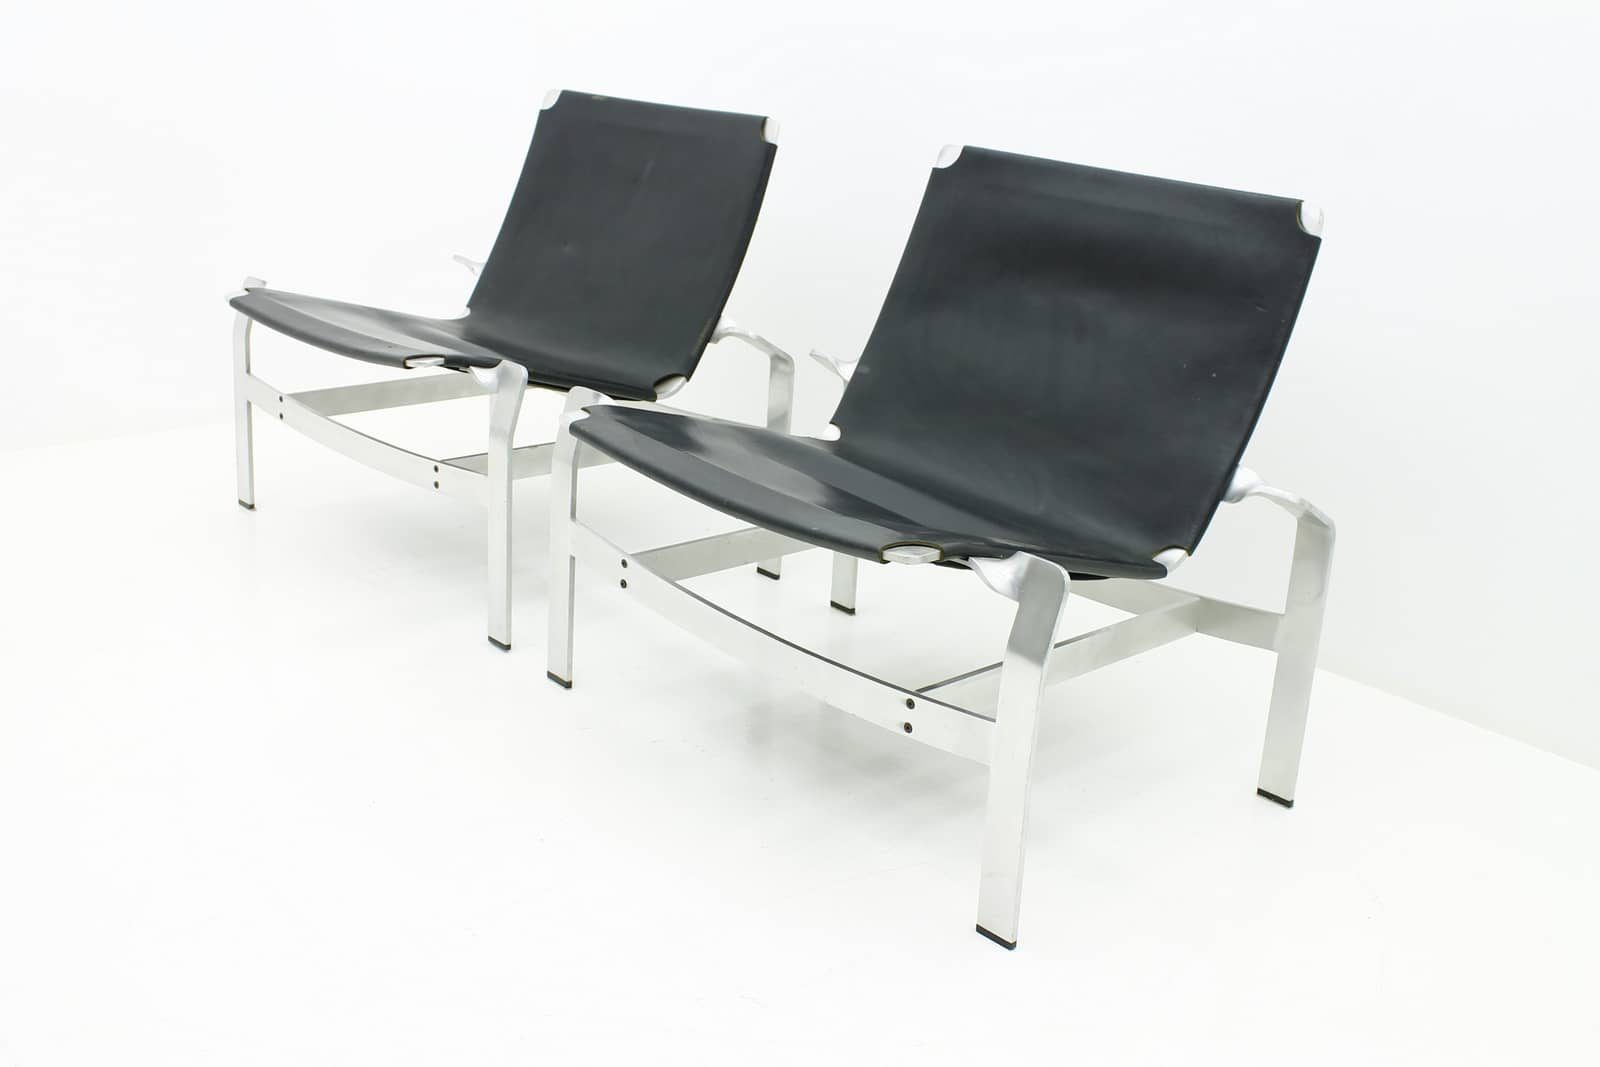 Pair of Lounge Chairs in Aluminum and Leather, Attributed to David de Majo (l)